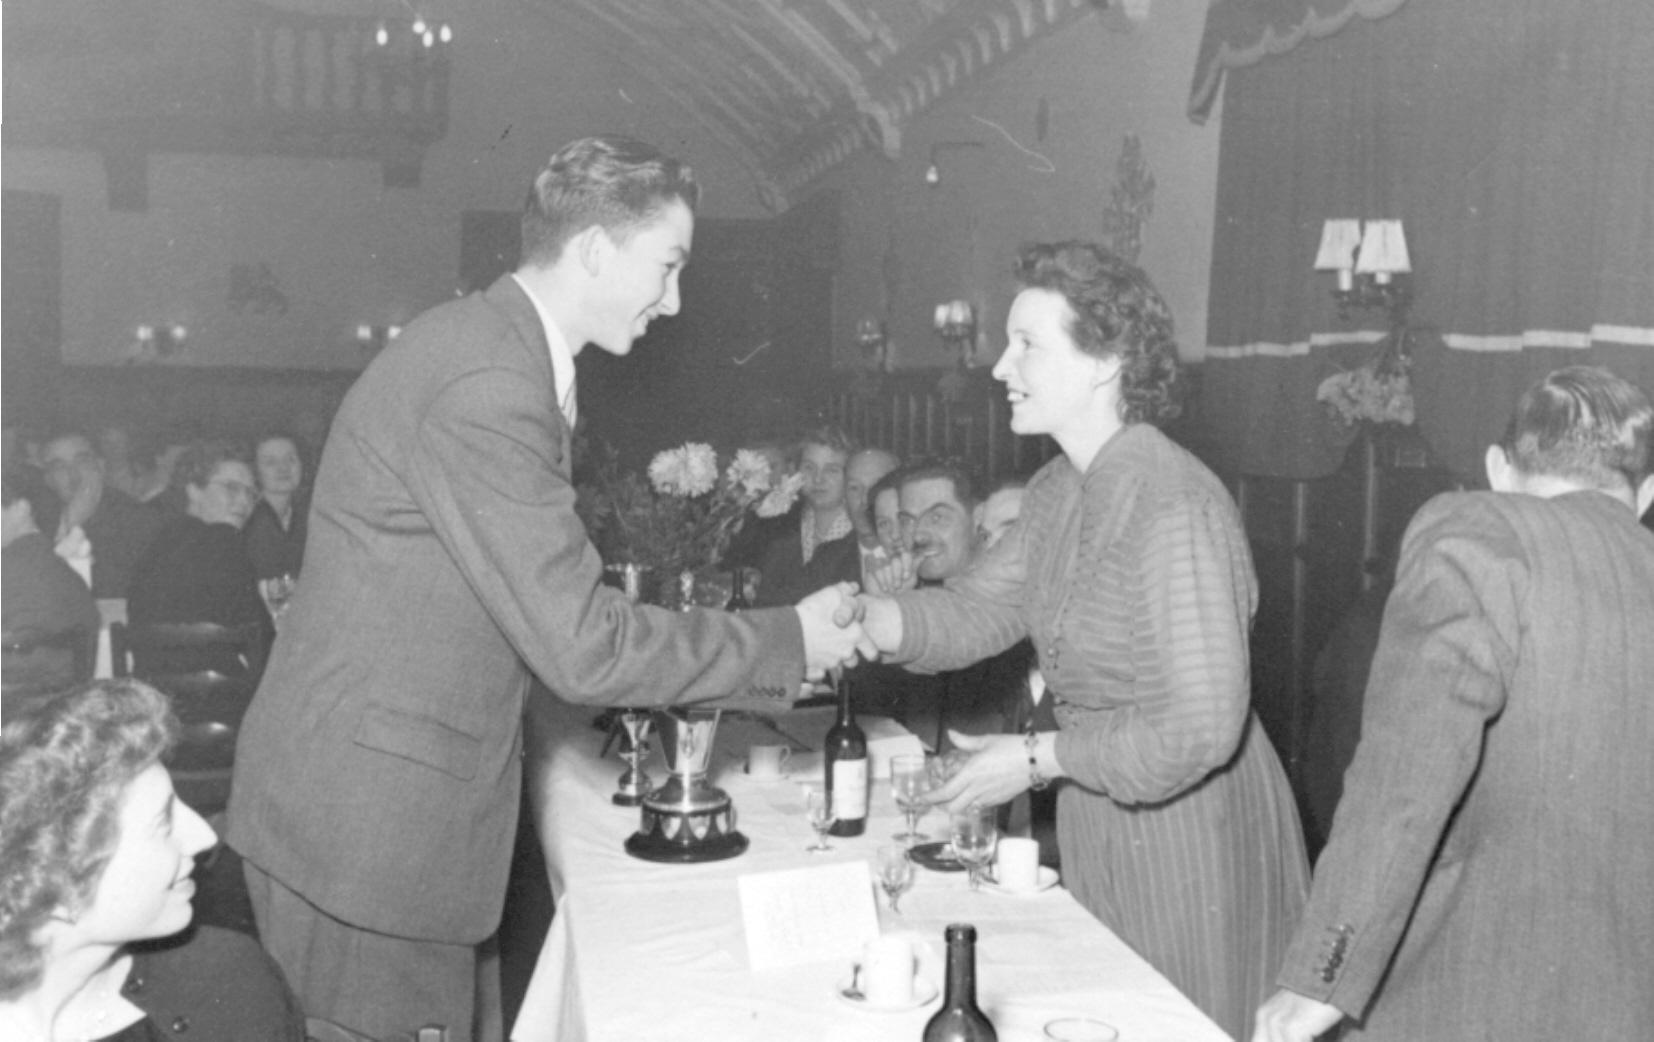 Club dinner, December 1952. Receiving awards from Mrs Sharpe